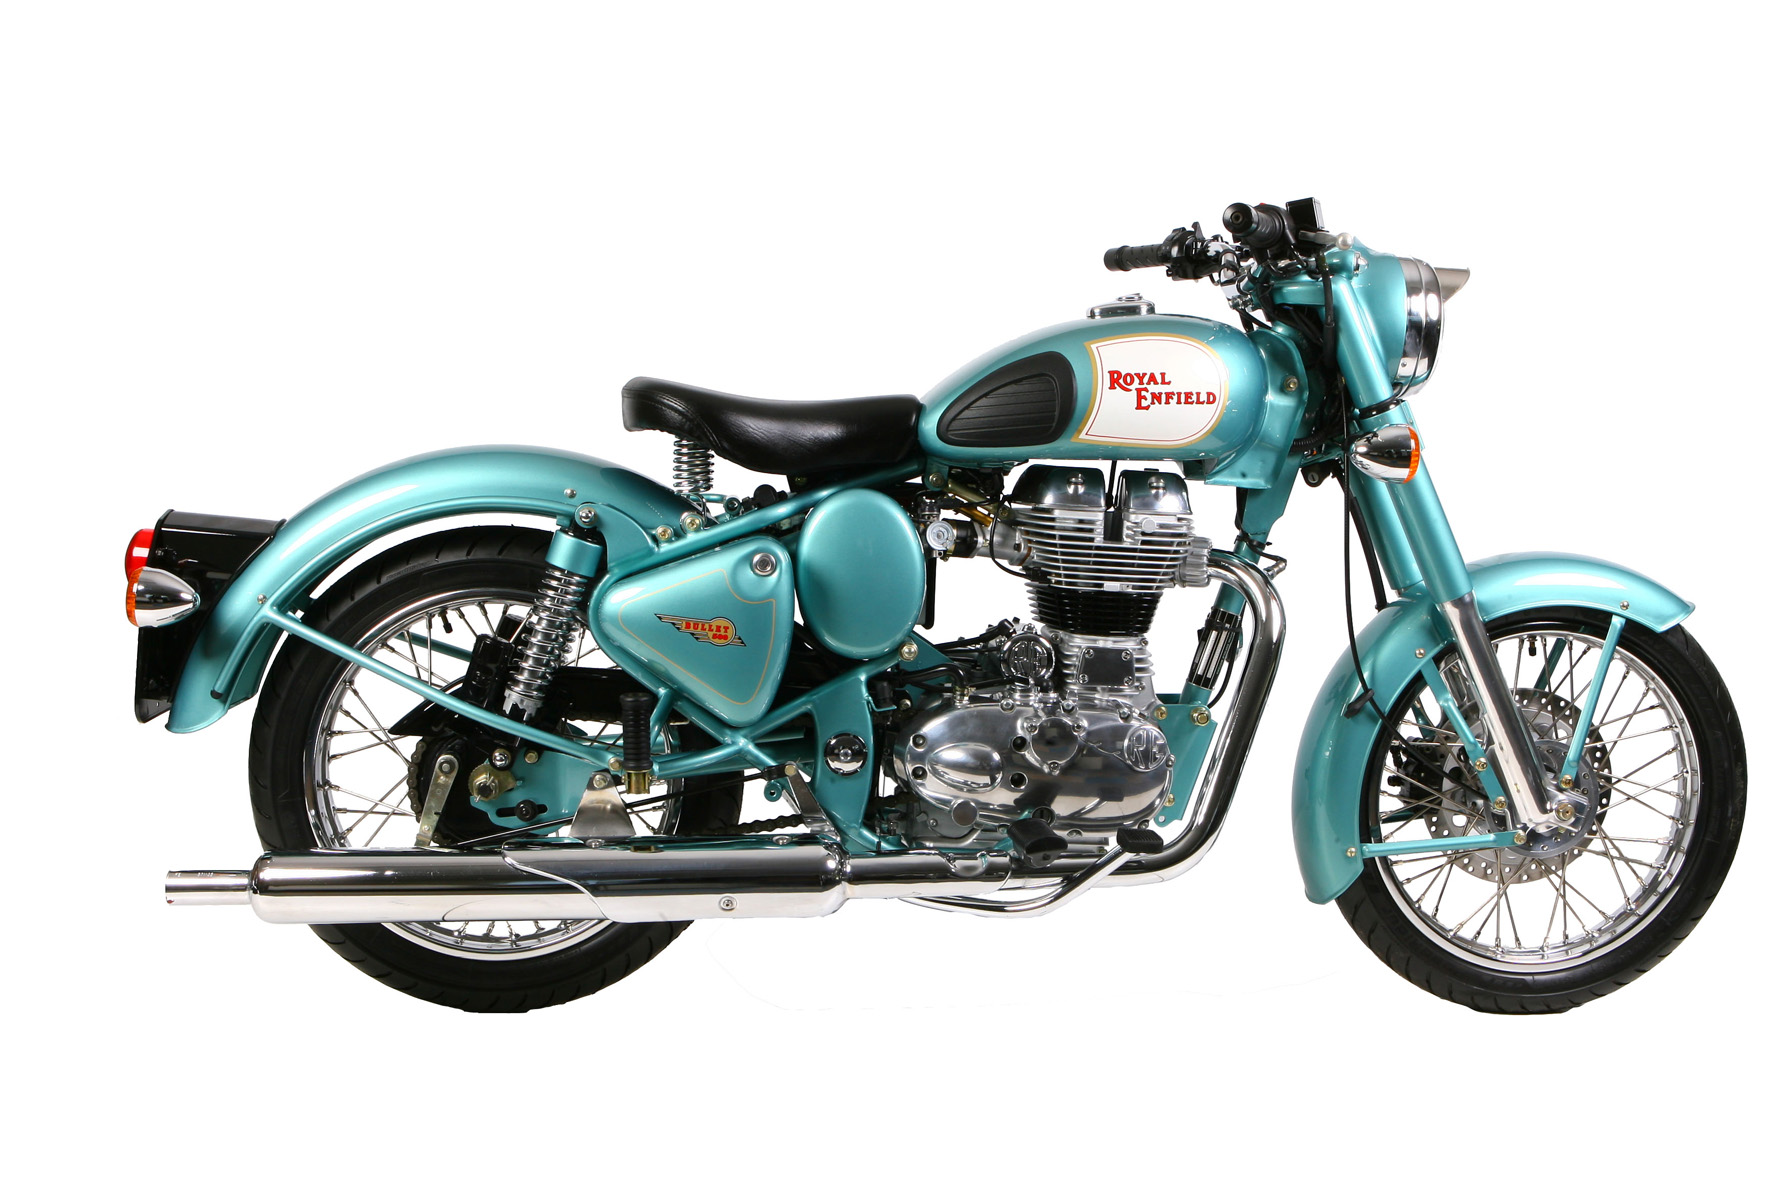 Royal enfield bullett photo - 6